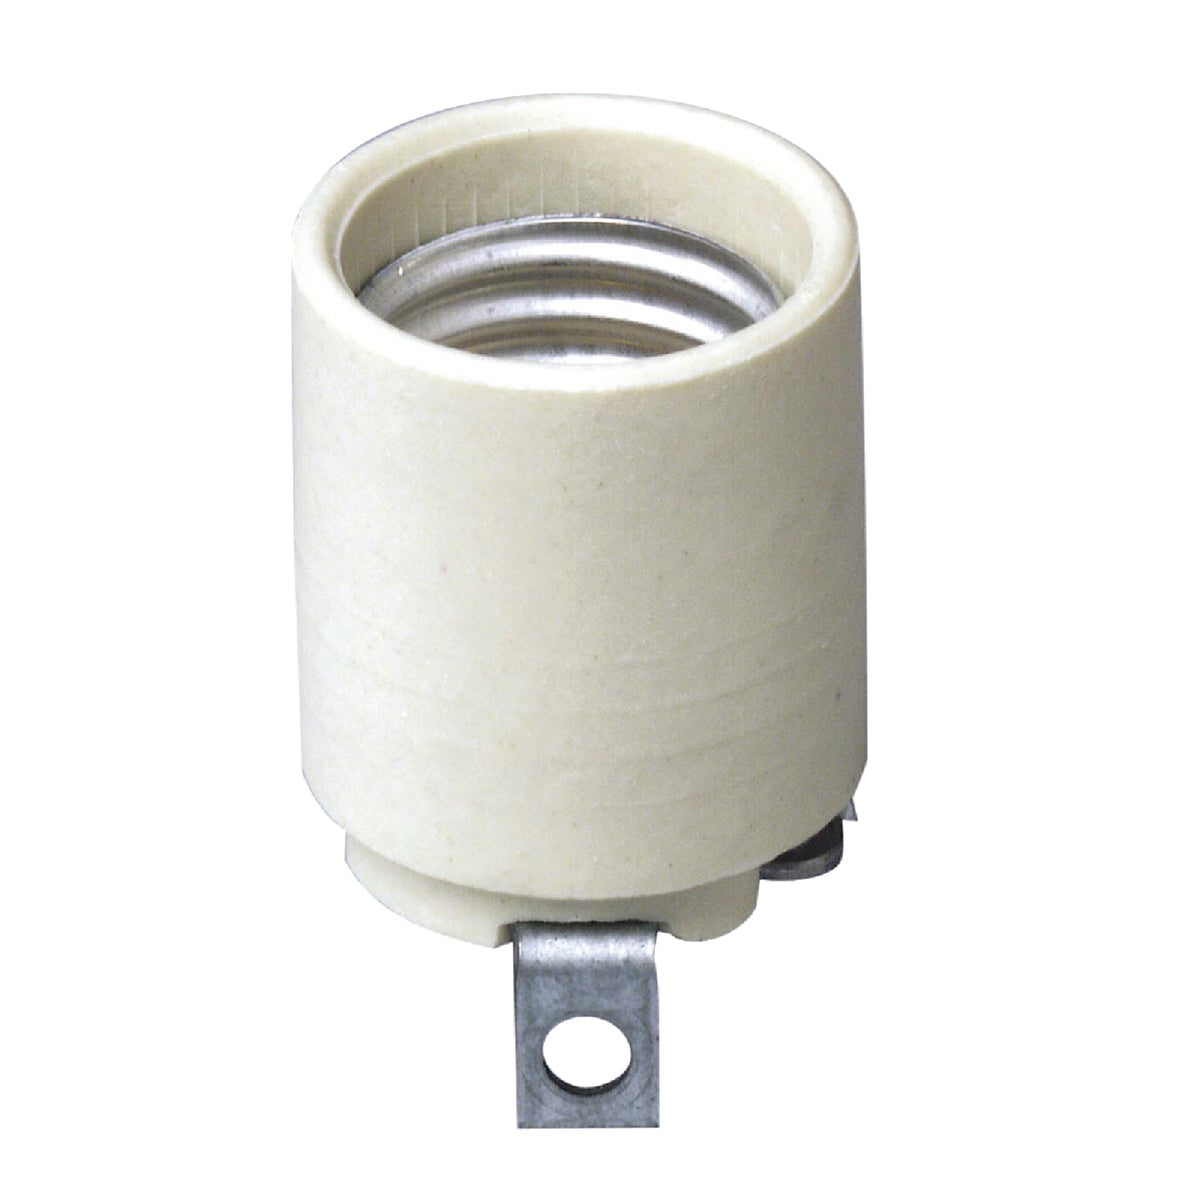 PORCELAIN LAMPHOLDER - 008-3152-F by Leviton Mfg Co